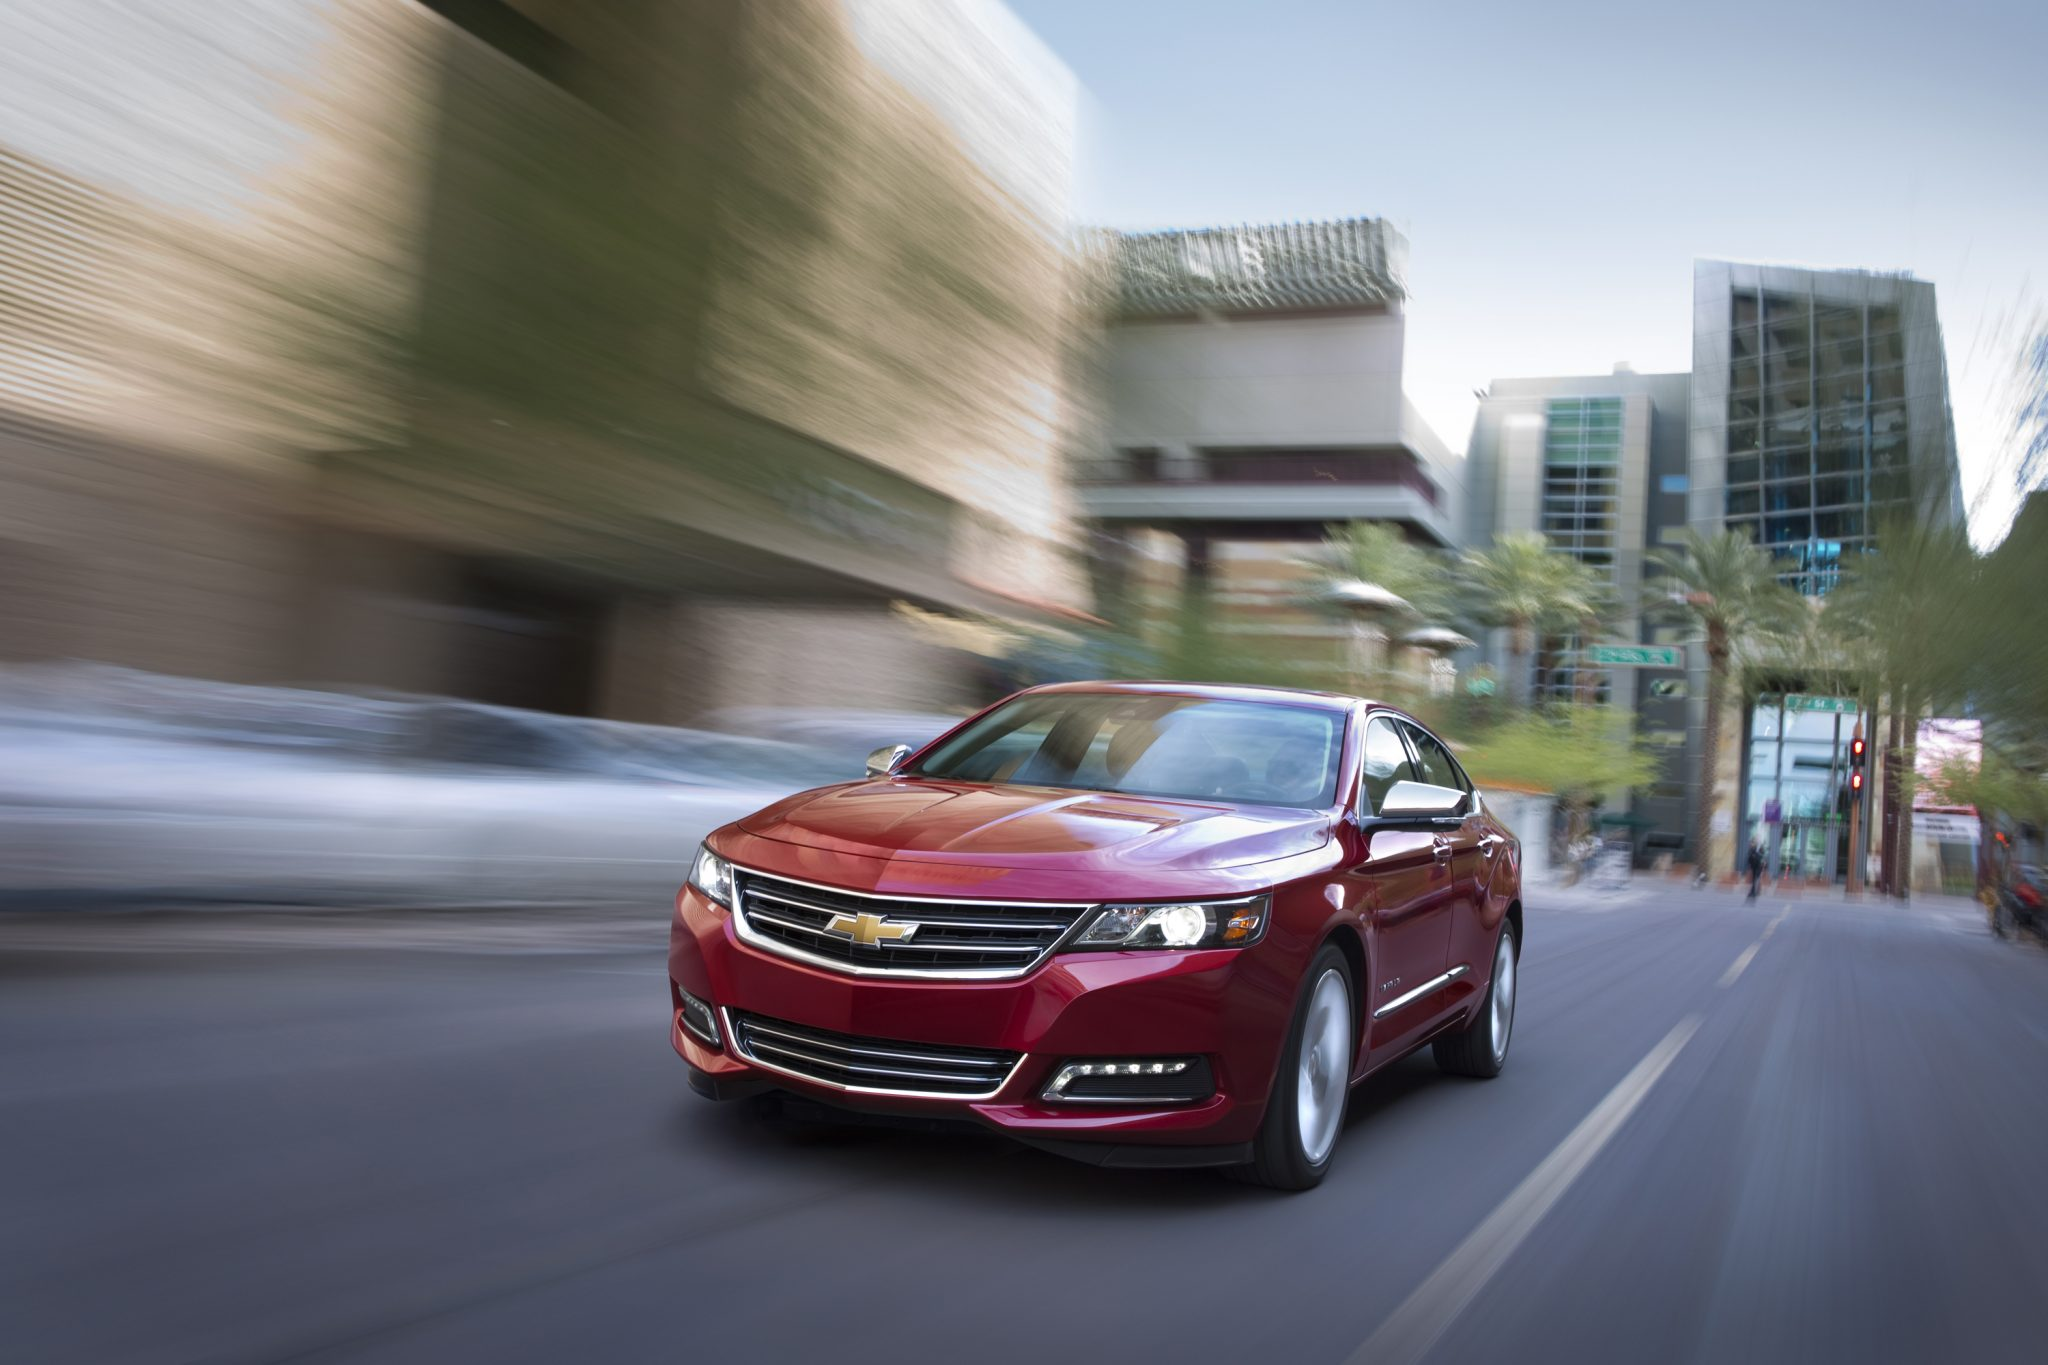 Chevy Impala Is 2014's Most Comfortable Car under $30,000